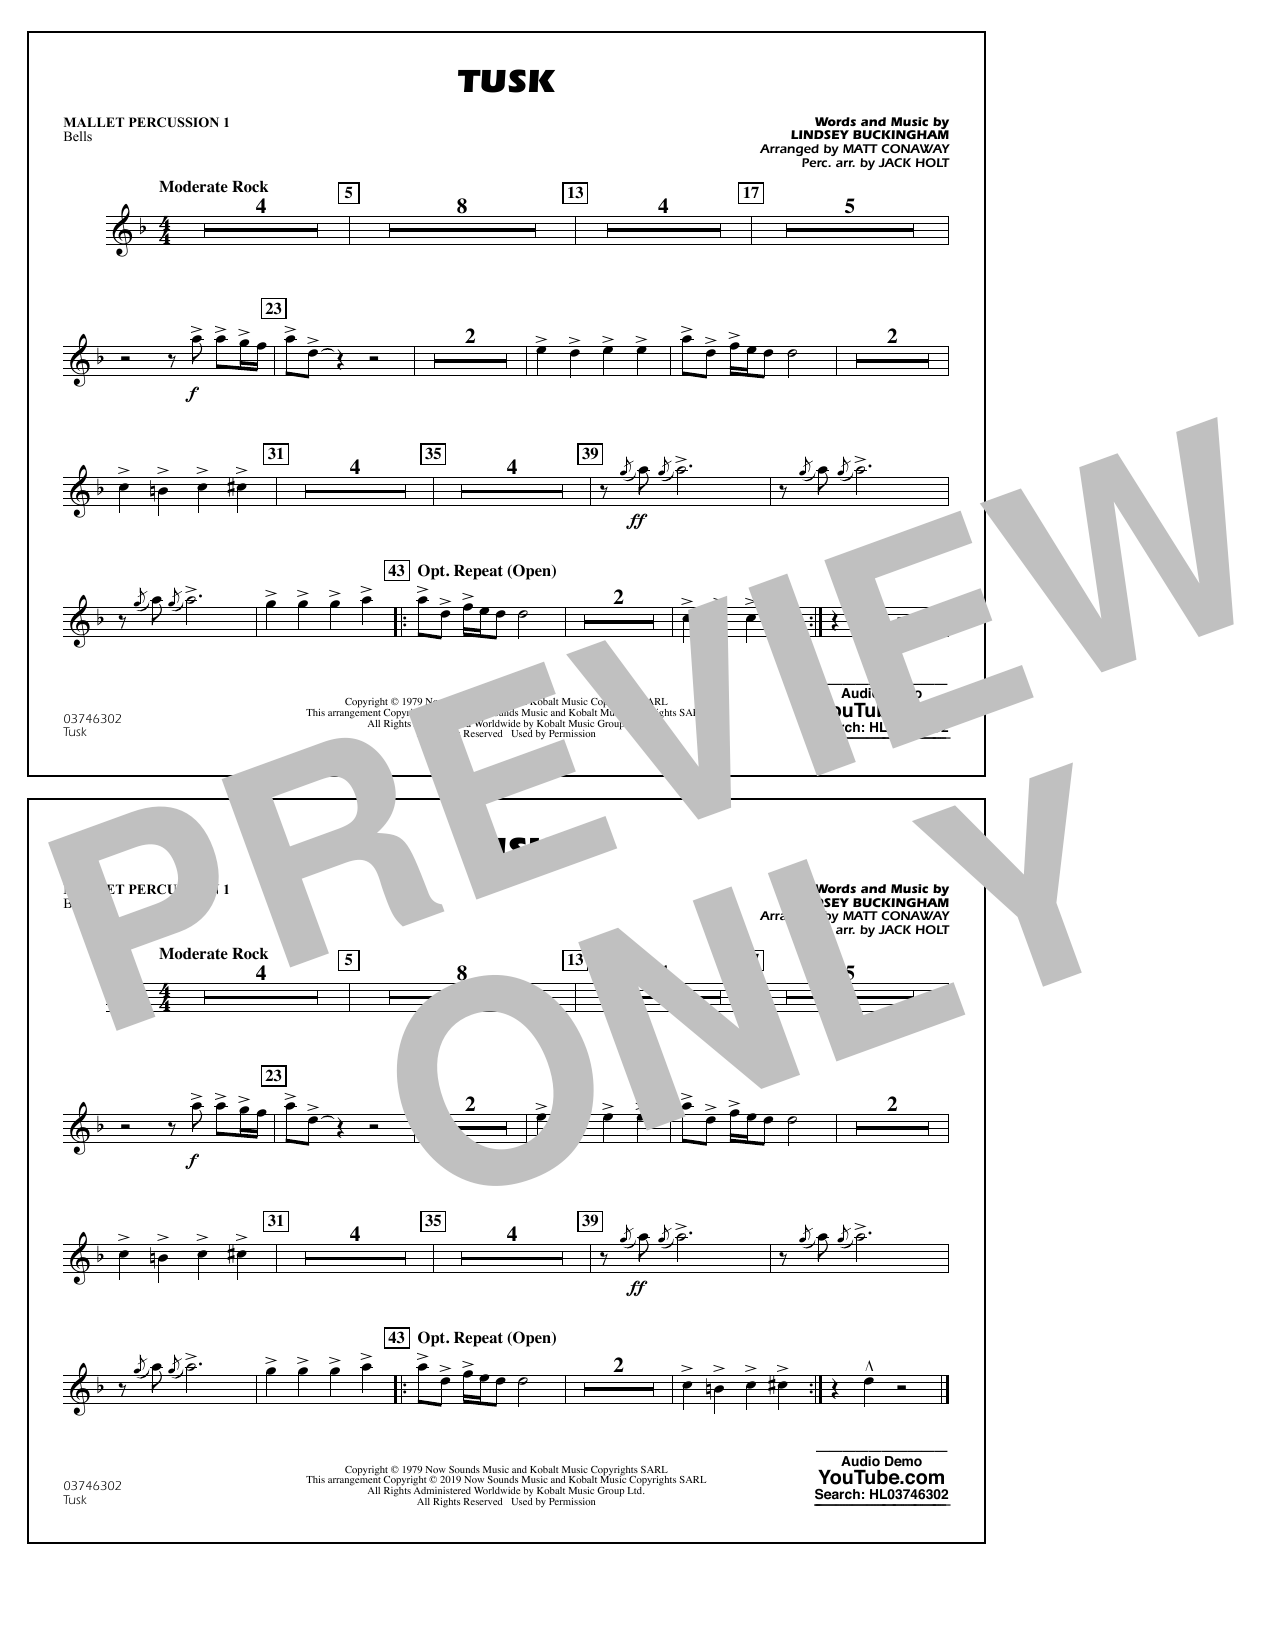 Fleetwood Mac Tusk (arr. Matt Conaway) - Mallet Percussion 1 sheet music notes and chords. Download Printable PDF.